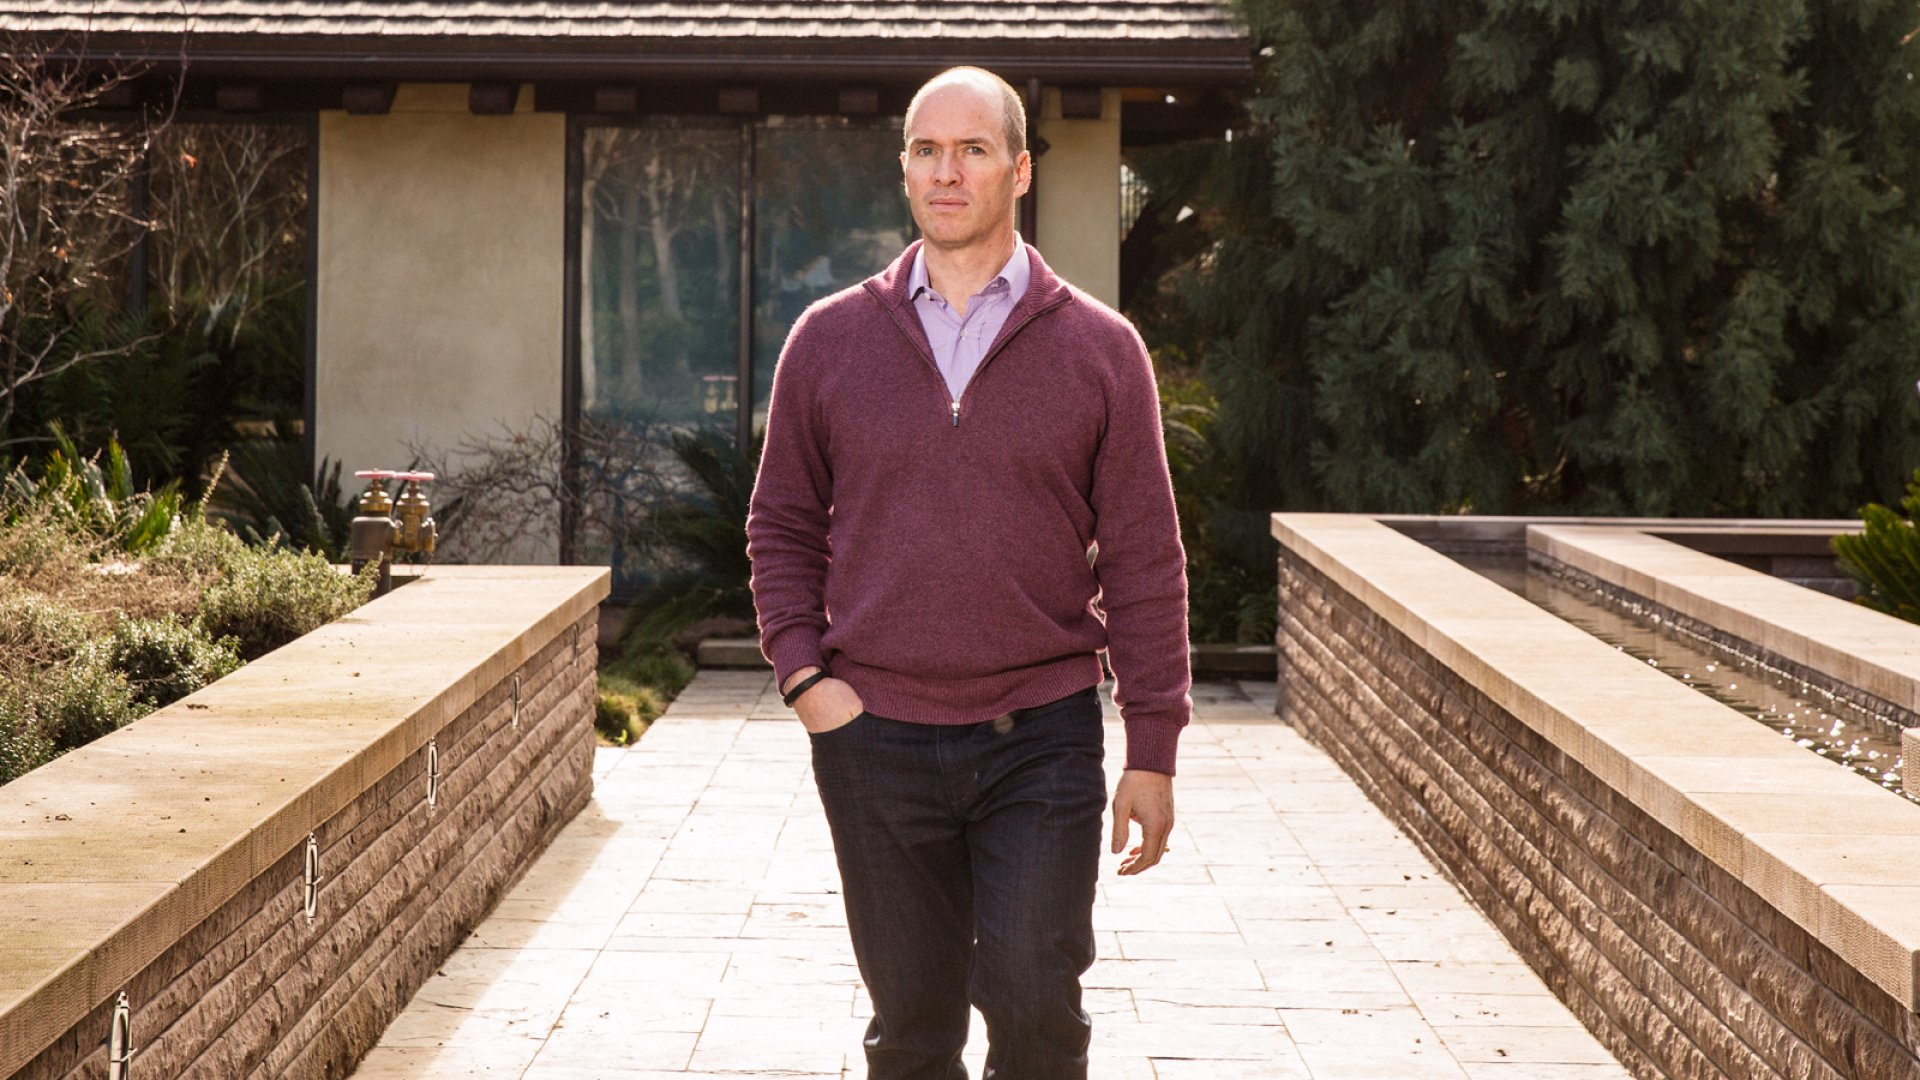 Ben Horowitz to Startup CEOs: This Won't Be Easy